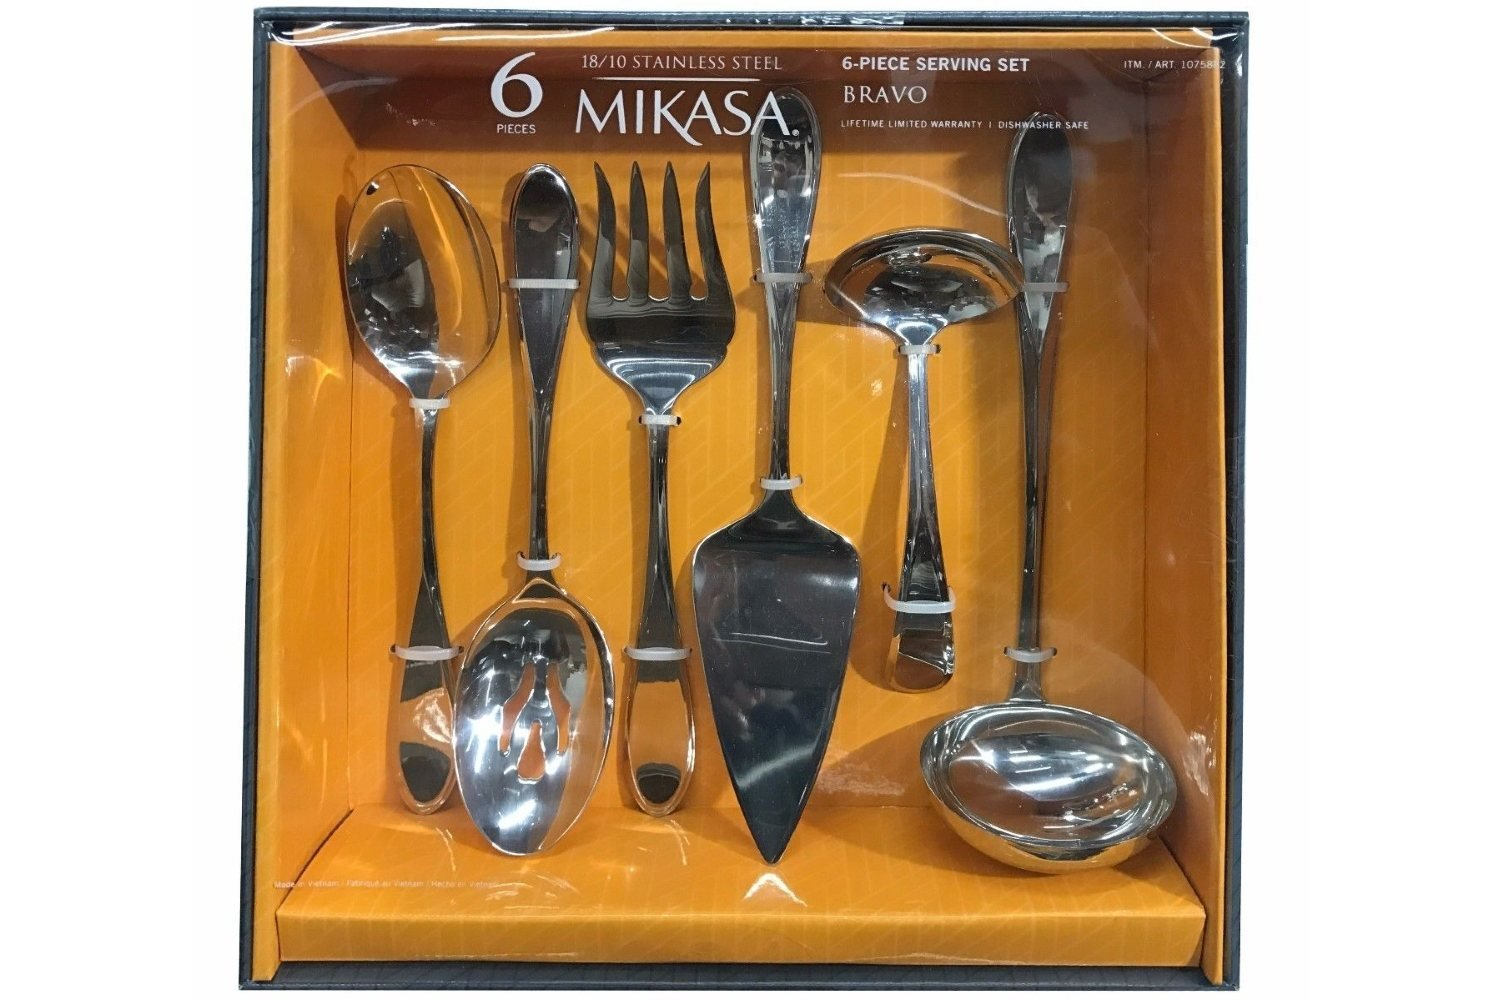 Mikasa Bravo 6 Piece Serving Set in Stainless Steel by Mikasa